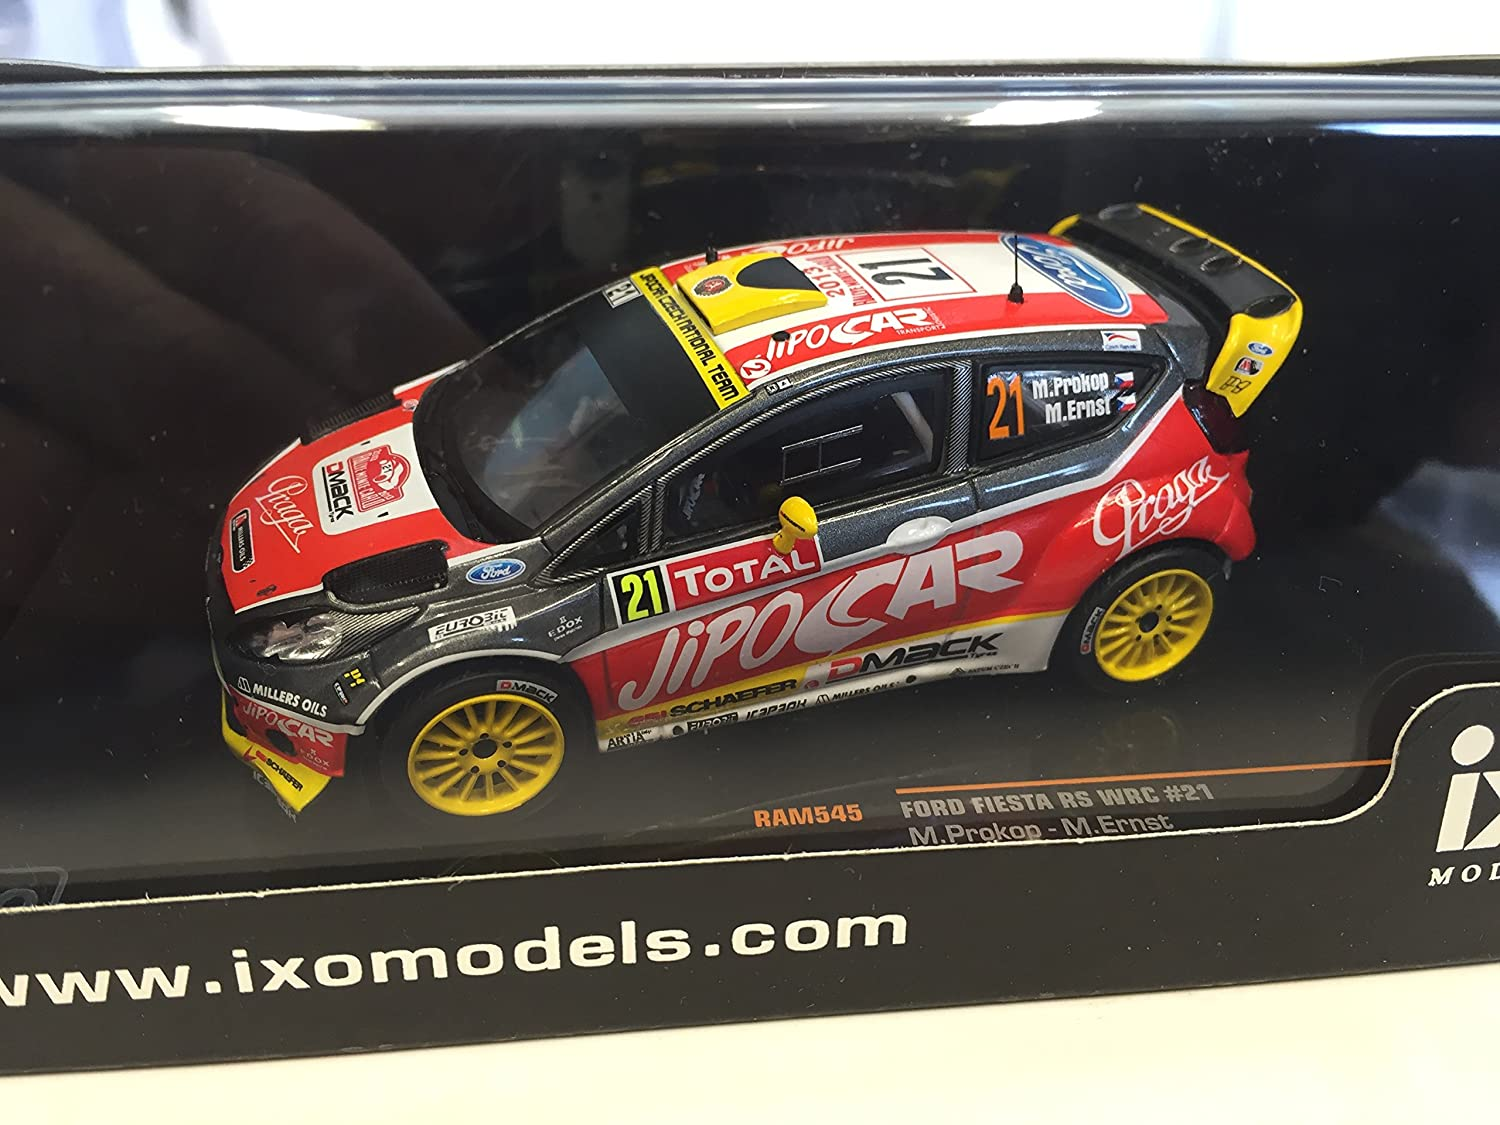 G/én/érique 1:43 Rally Car Ford Fiesta RS WRC Prokop Rally Monte Carlo 2013 1:43 IXO RAM545